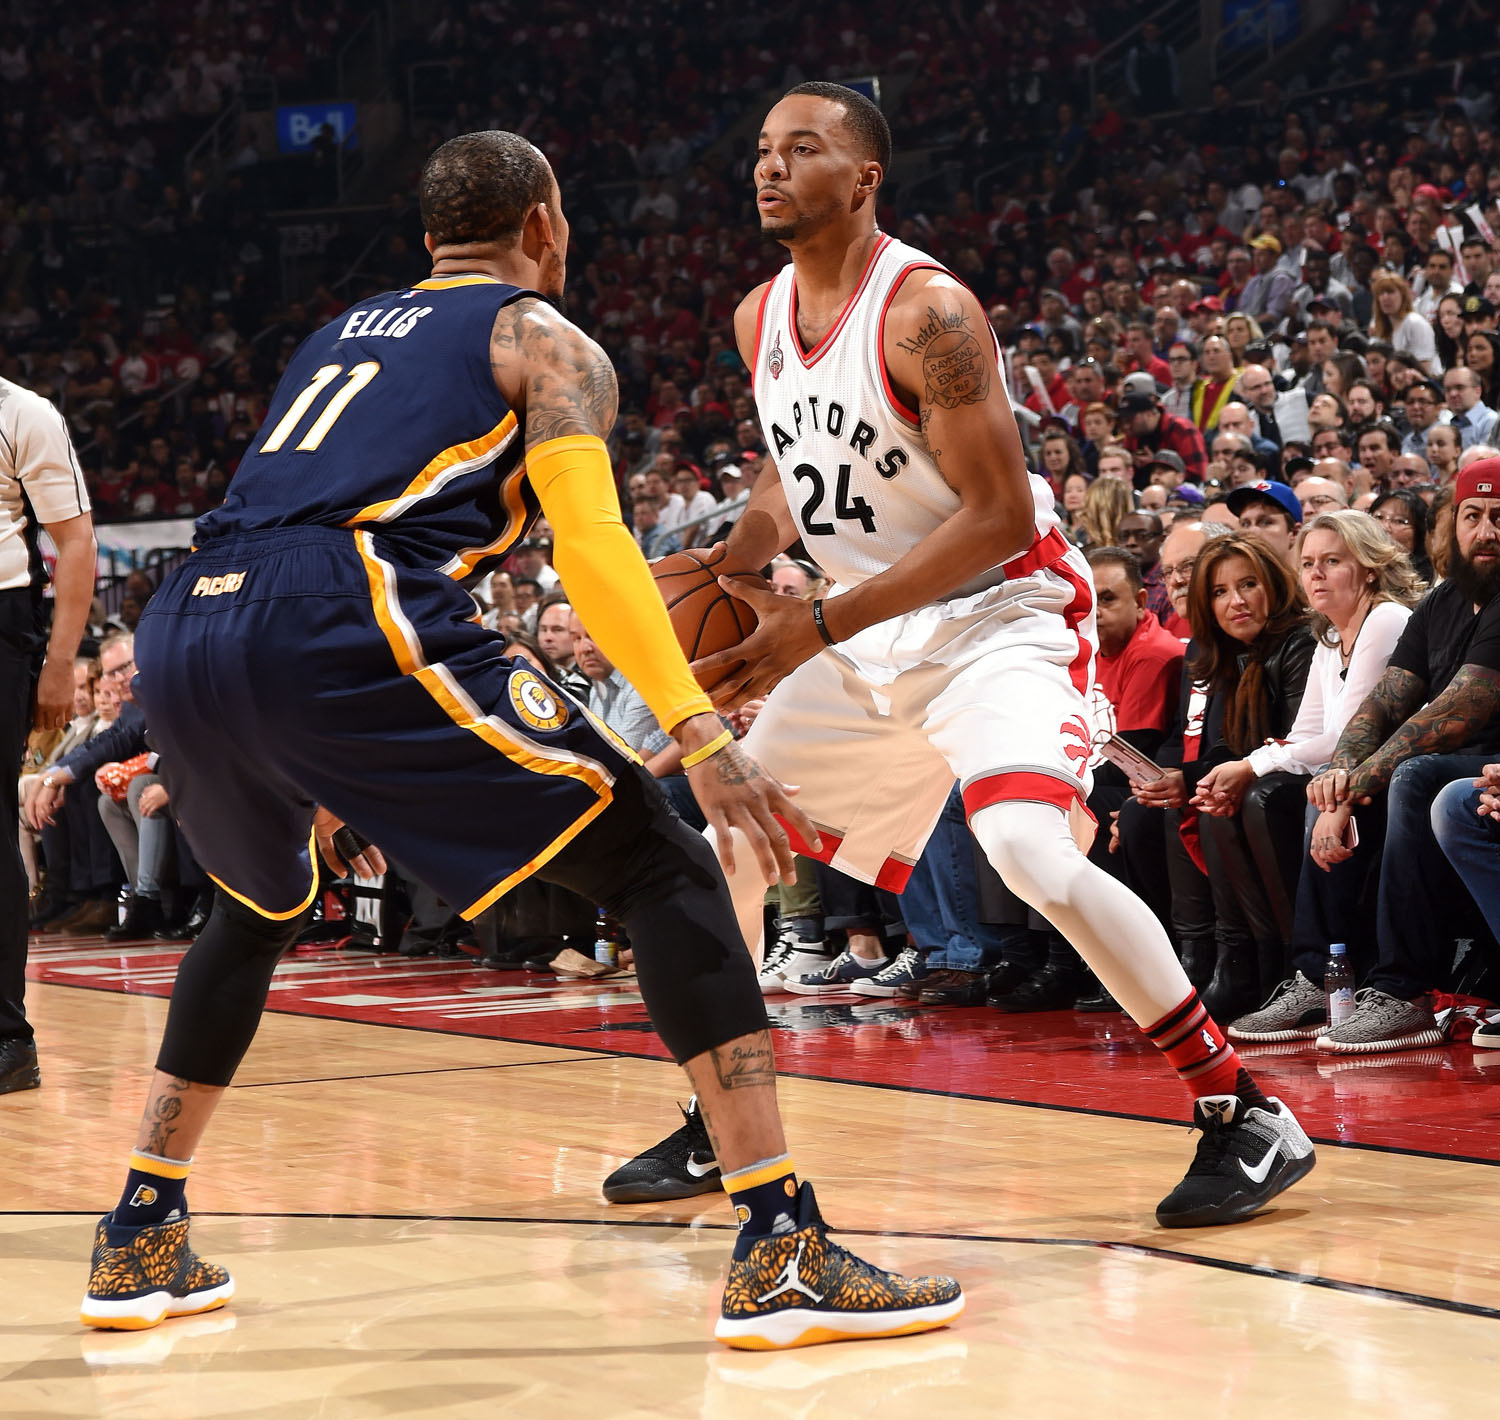 TORONTO, CANADA - APRIl 16: Norman Powell #24 of the Toronto Raptors handles the ball during the game against Monta Ellis #11 of the Indiana Pacers in Game One of the Eastern Conference Finals during the 2016 NBA Playoffs on April 16, 2016 at the Air Canada Centre in Toronto, Ontario, Canada.  NOTE TO USER: User expressly acknowledges and agrees that, by downloading and or using this Photograph, user is consenting to the terms and conditions of the Getty Images License Agreement.  Mandatory Copyright Notice: Copyright 2016 NBAE (Photo by Ron Turenne/NBAE via Getty Images)